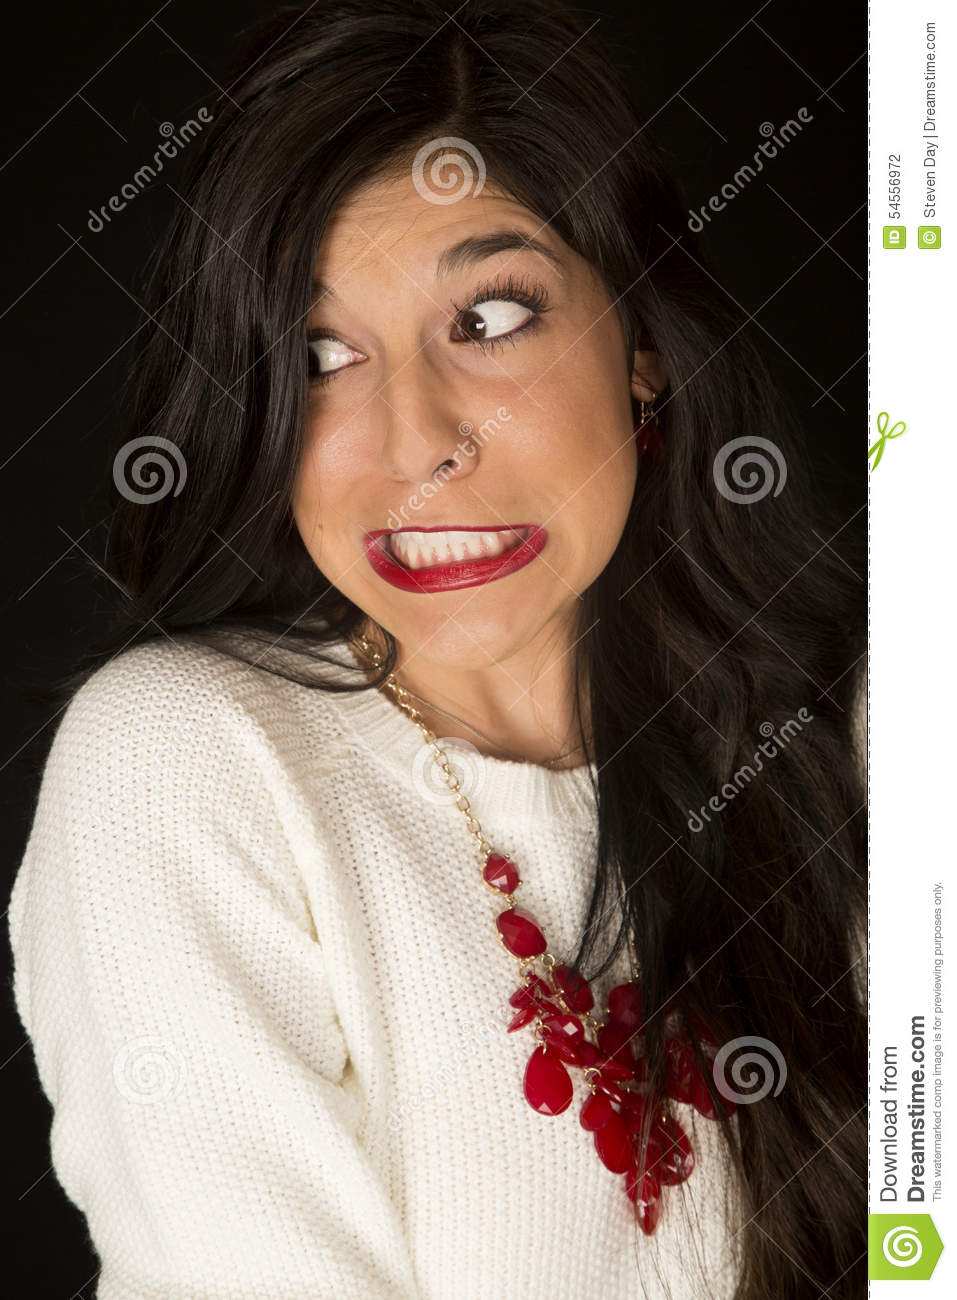 Intense Teeth Gritted Facial Expression On A Dark Woman